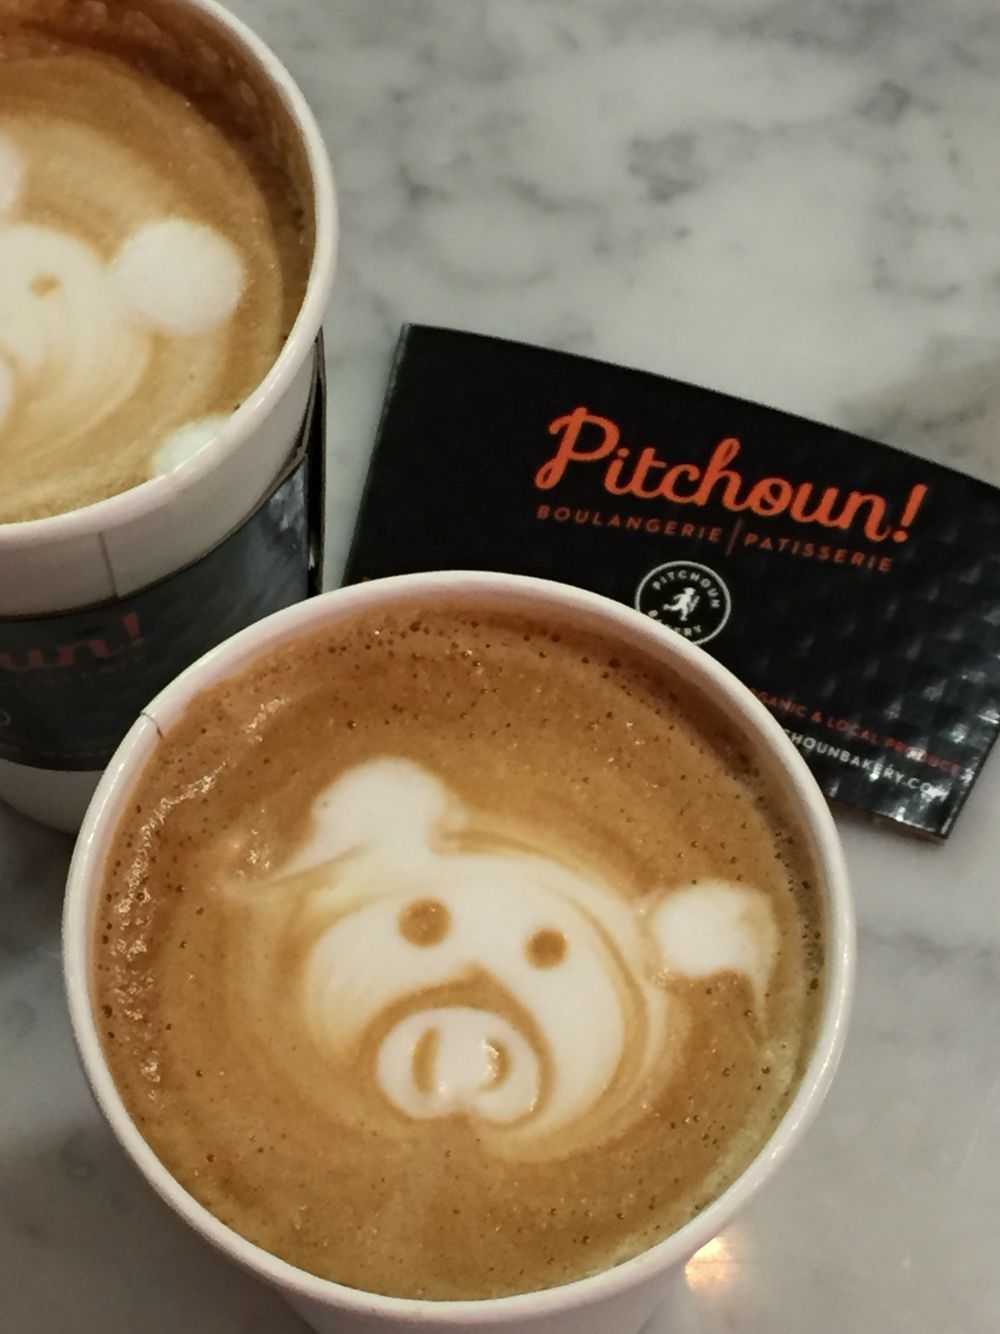 Latte art at Pitchoun!